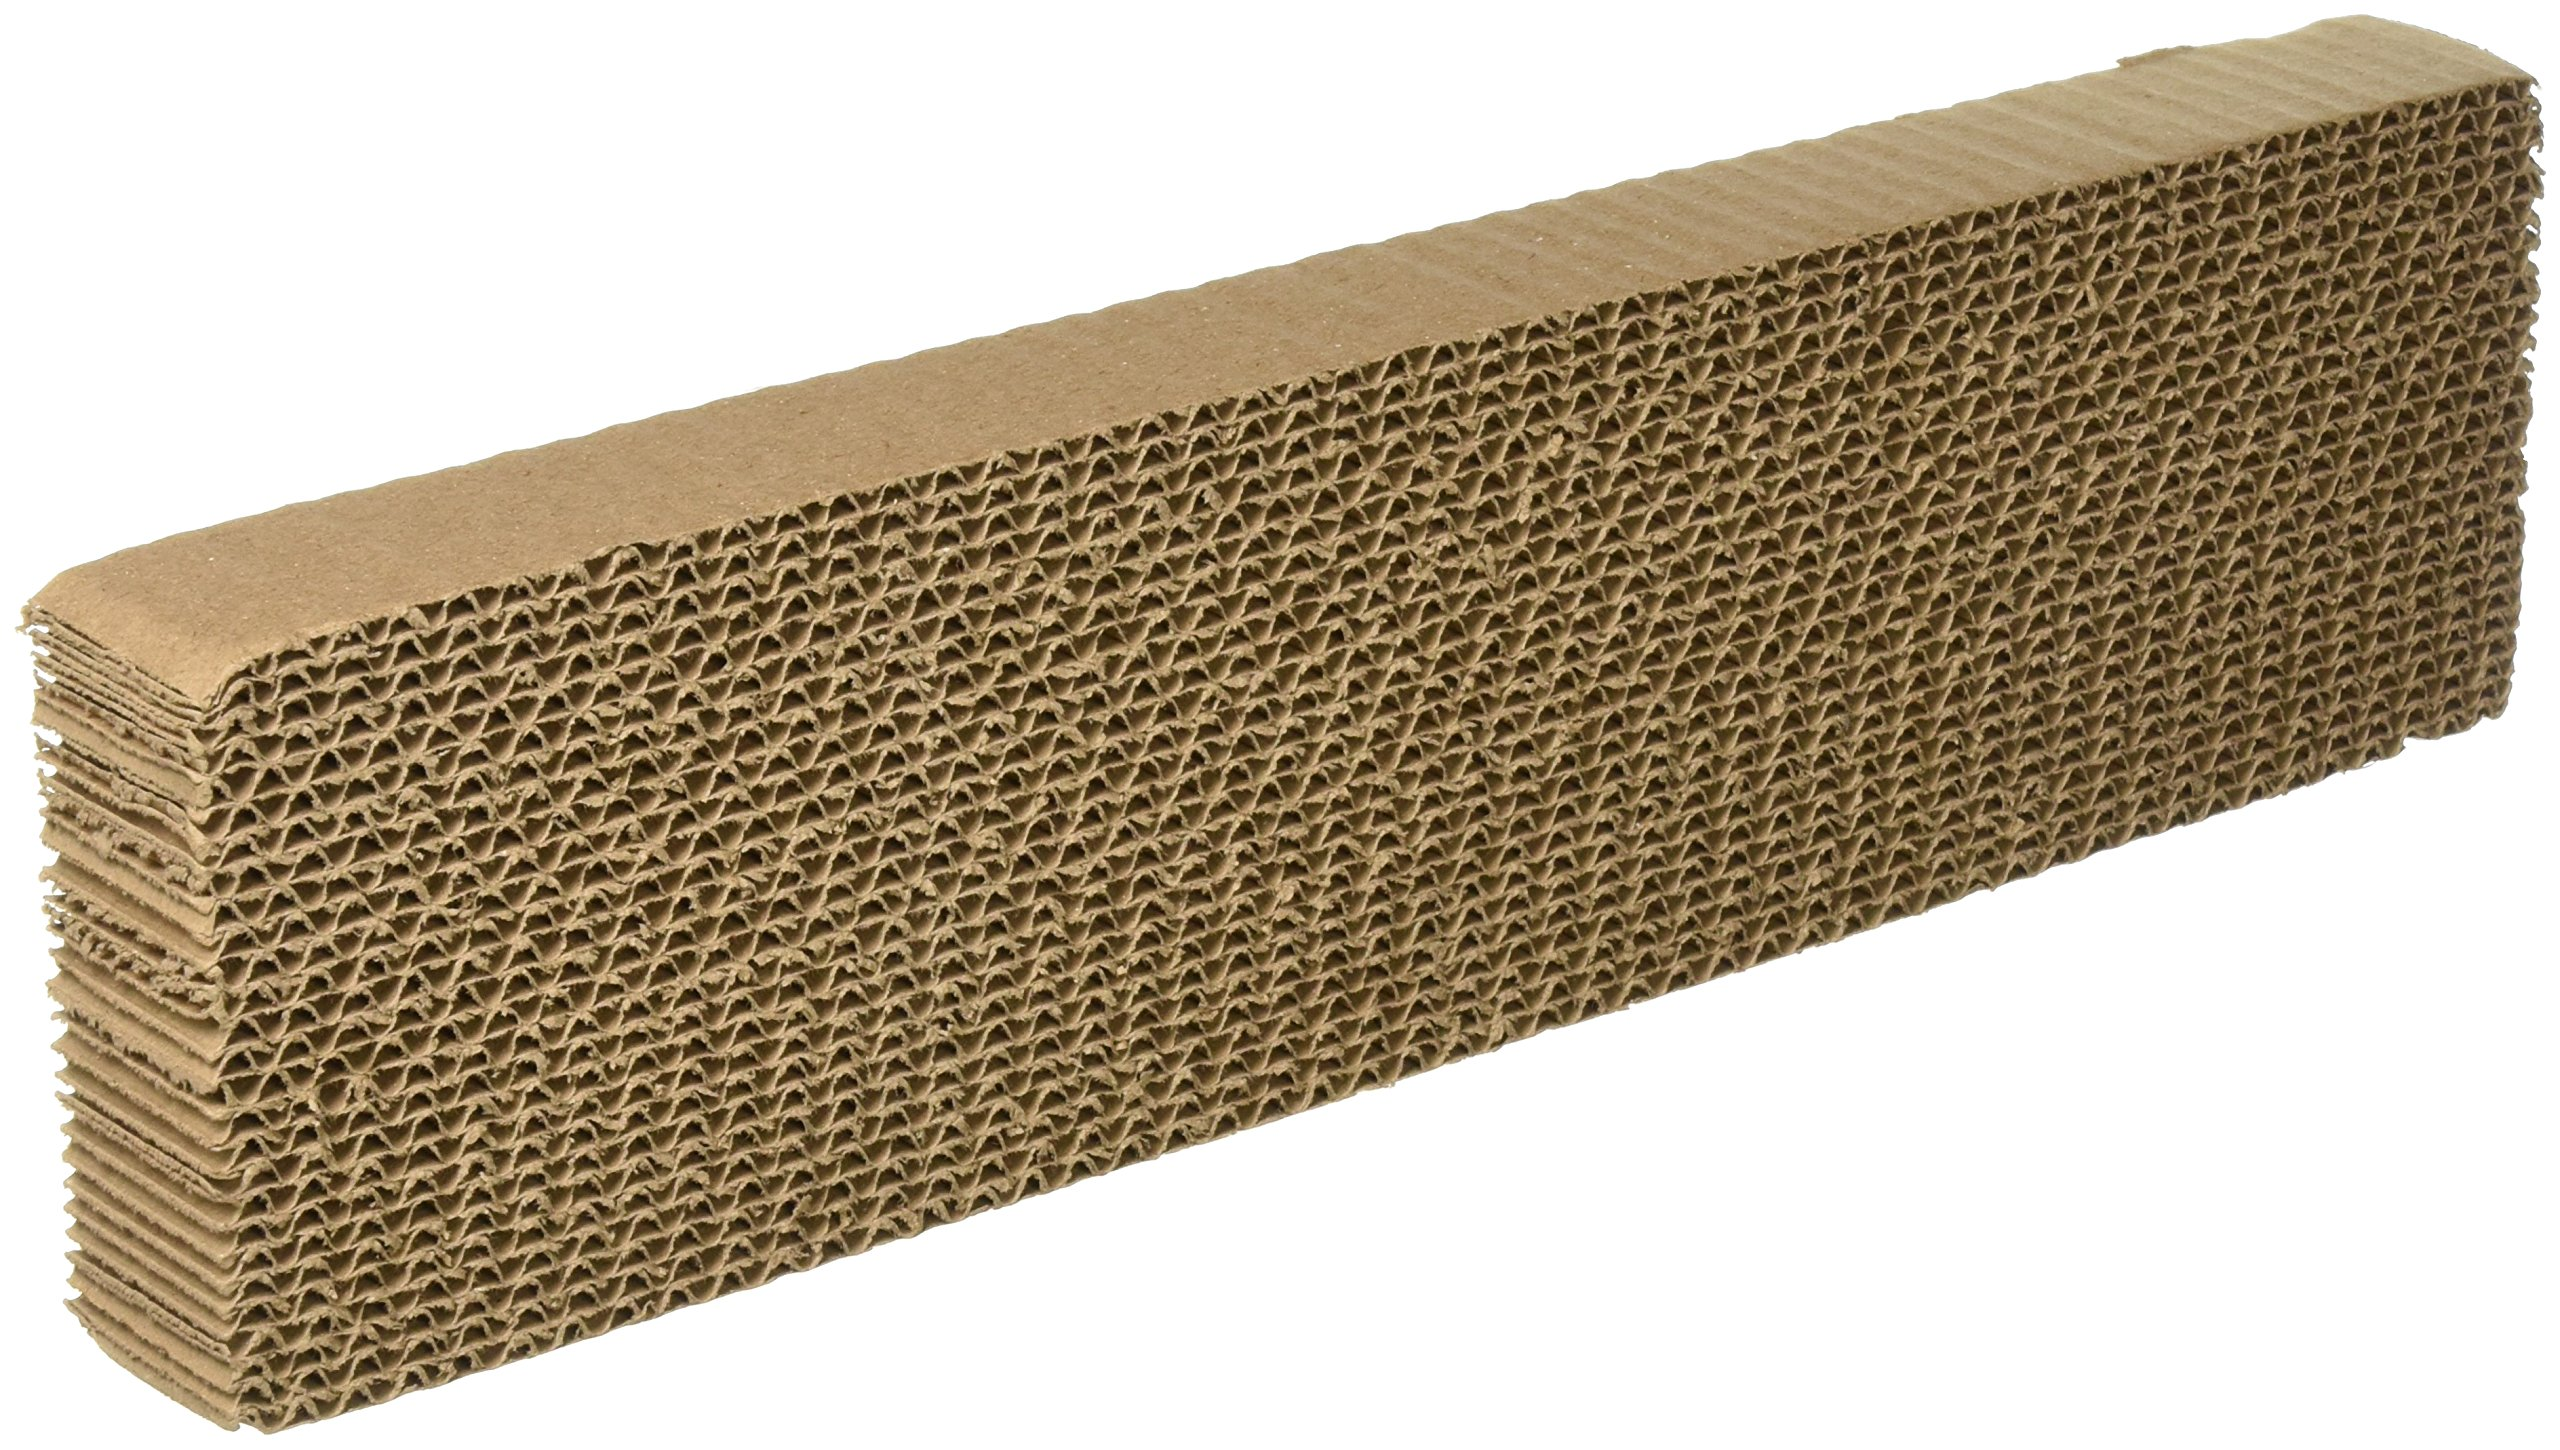 Ware ManufaCounturing (3 Packages) 2-Pack Corrugated Replacement Pads